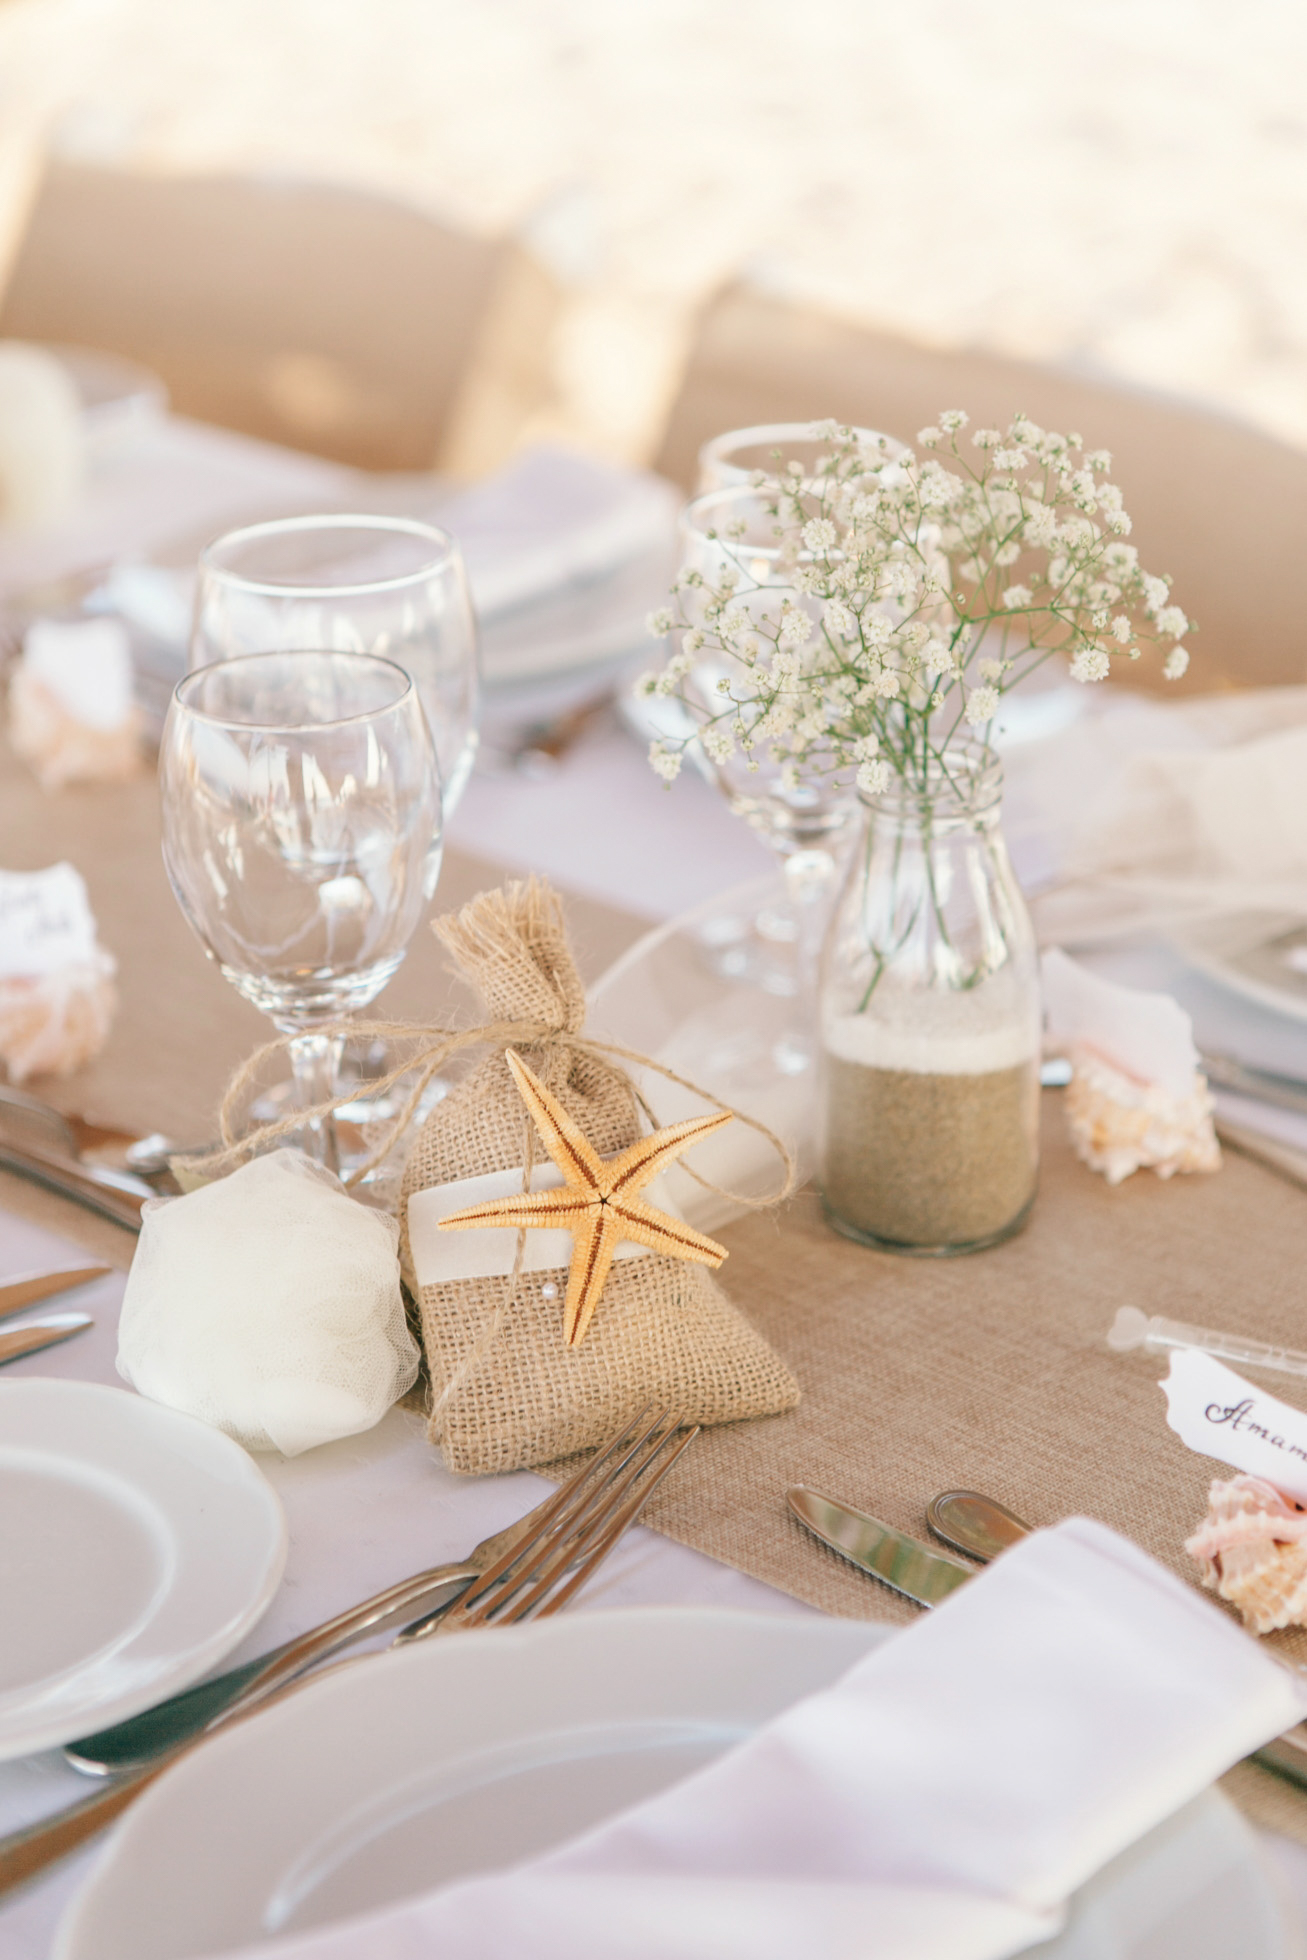 Beoho beach wedding reception details and tablescapes decorated and ready for the dinner reception, set up under a beduin tent and in the soft sand of the hotel beach.